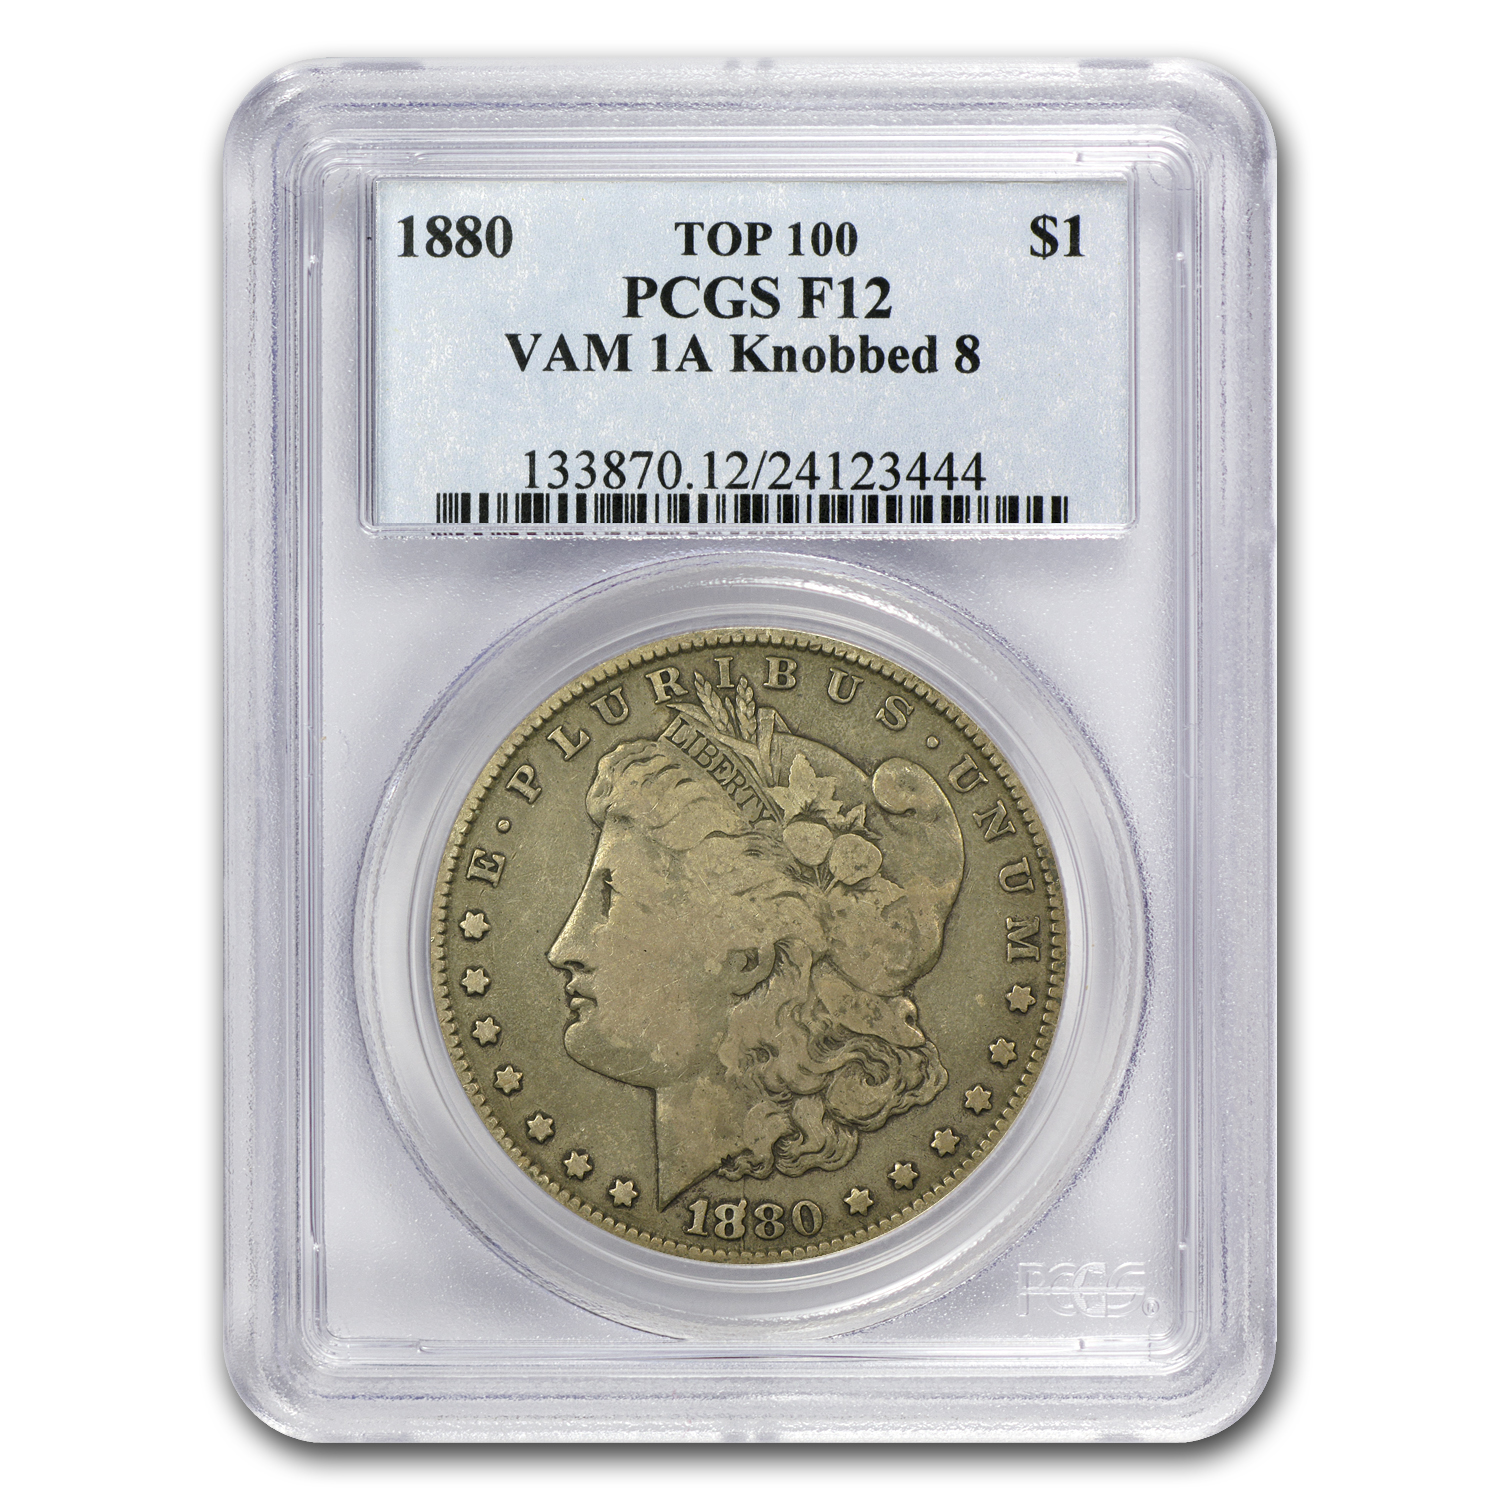 1880 Morgan Dollar - Fine-12 PCGS VAM-1A Knobbed 8 Top-100